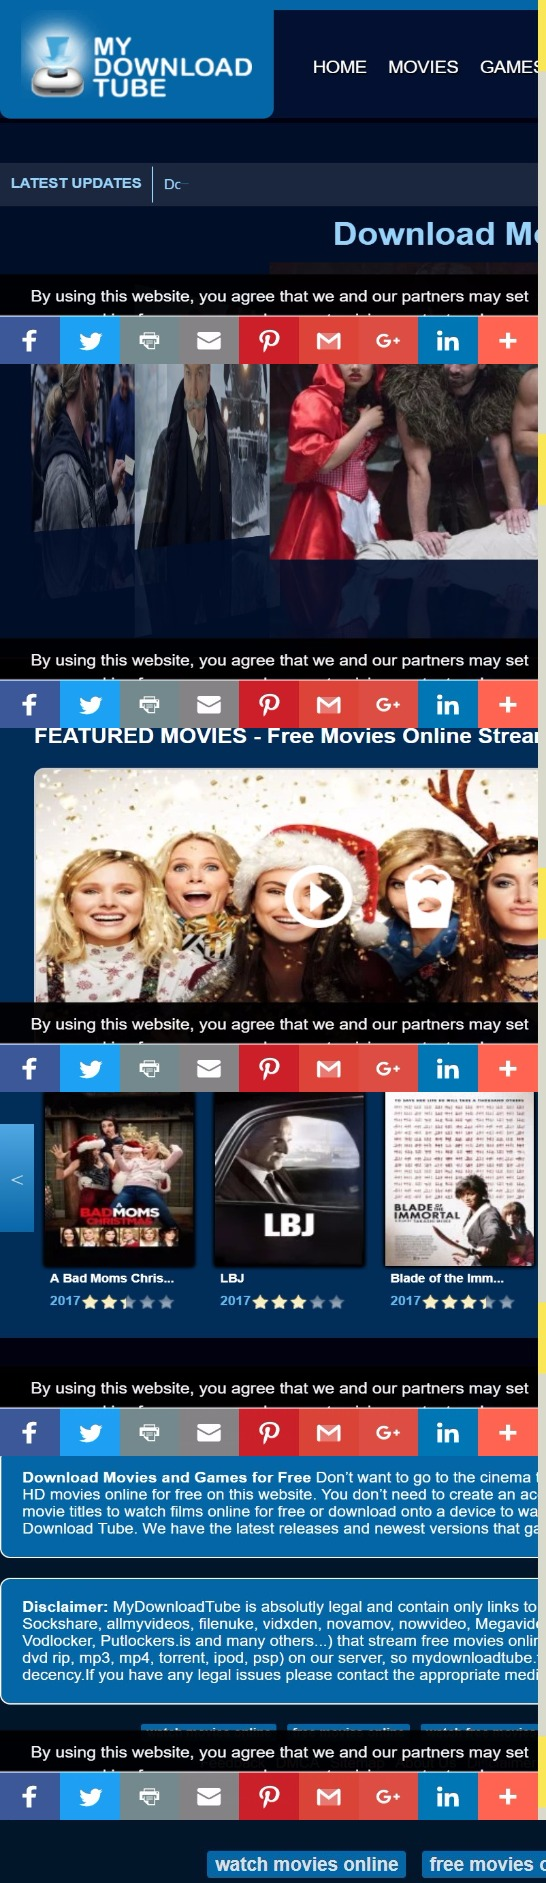 free movie downloads - watch and download movies online for free